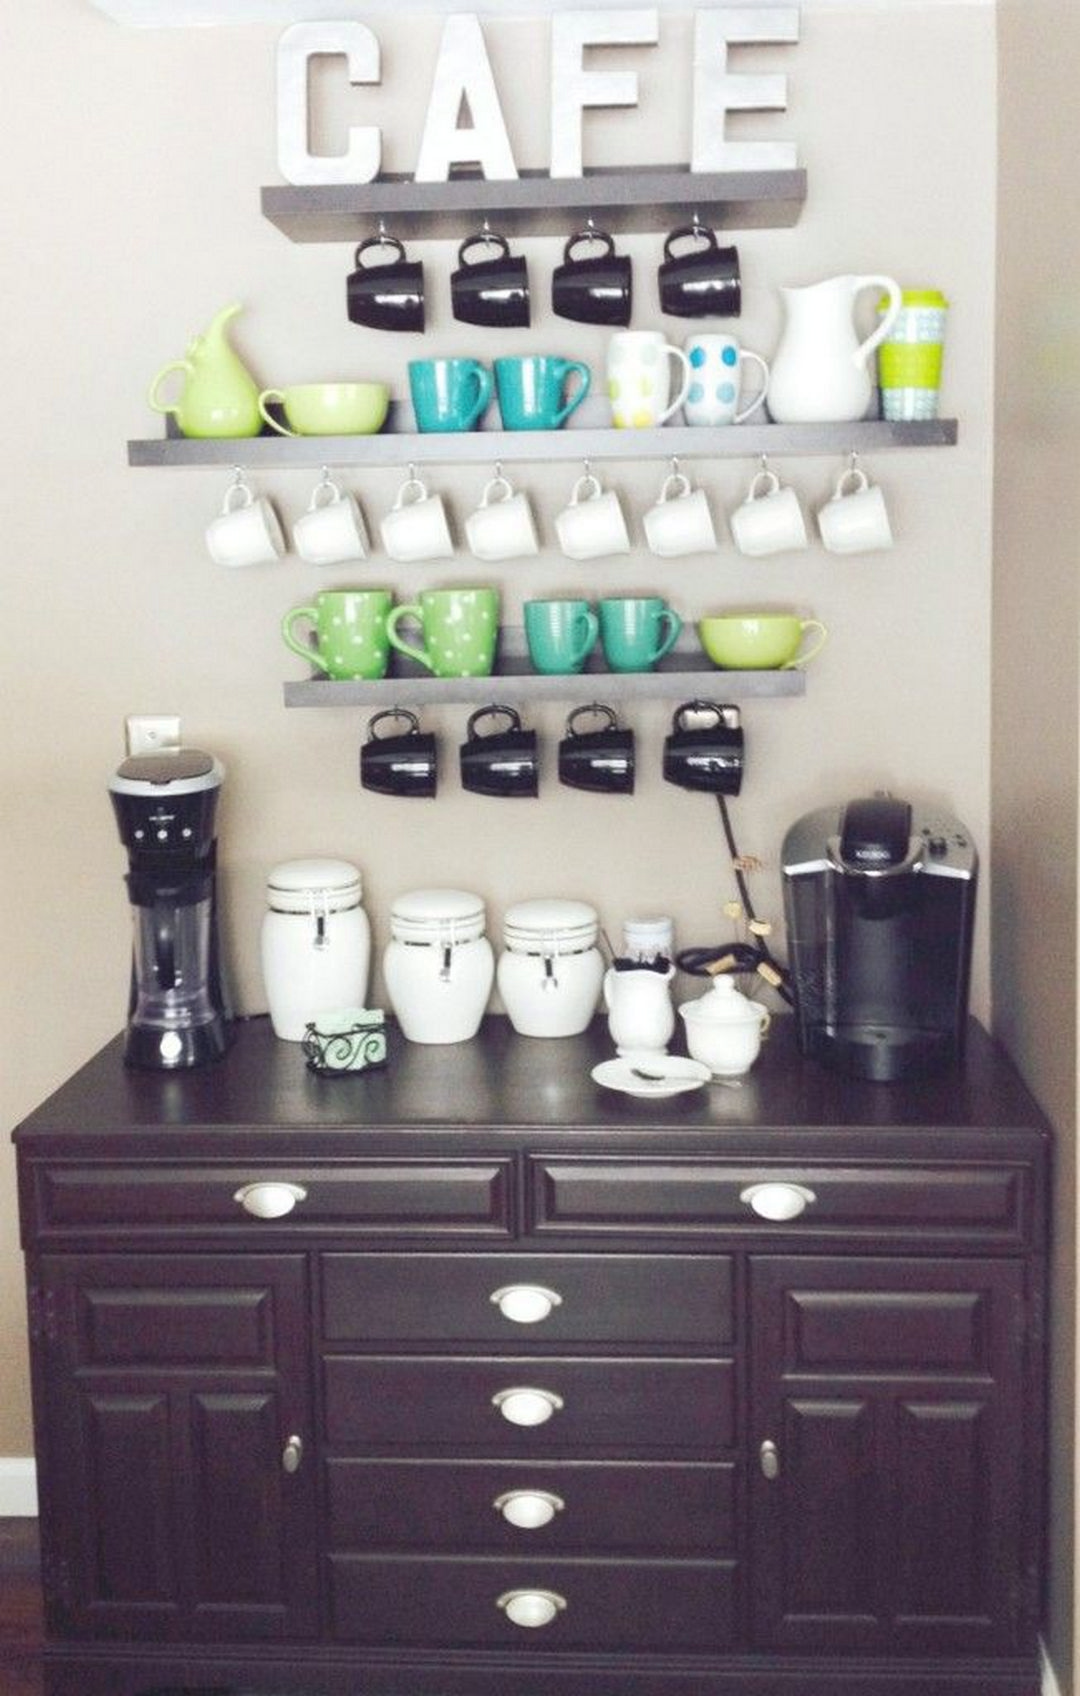 11 Incredibly Useful Kitchen Organization Tips for Small House ... on small kitchen breakfast bar, small condo kitchen bar, small kitchen design ideas budget, small kitchen floor design ideas, top home bar ideas, small eat in kitchen design ideas, small kitchen design interior, small kitchen coffee bar, bar under basement stairs ideas, open kitchen living room design ideas, small kitchen layout design, small outdoor bar design ideas, small kitchen design color, bar stool design ideas, small farmhouse kitchen design ideas, bright colors for small kitchens ideas, red small kitchen design ideas, small narrow kitchen design ideas, small kitchen bar counters, kitchen bar area ideas,